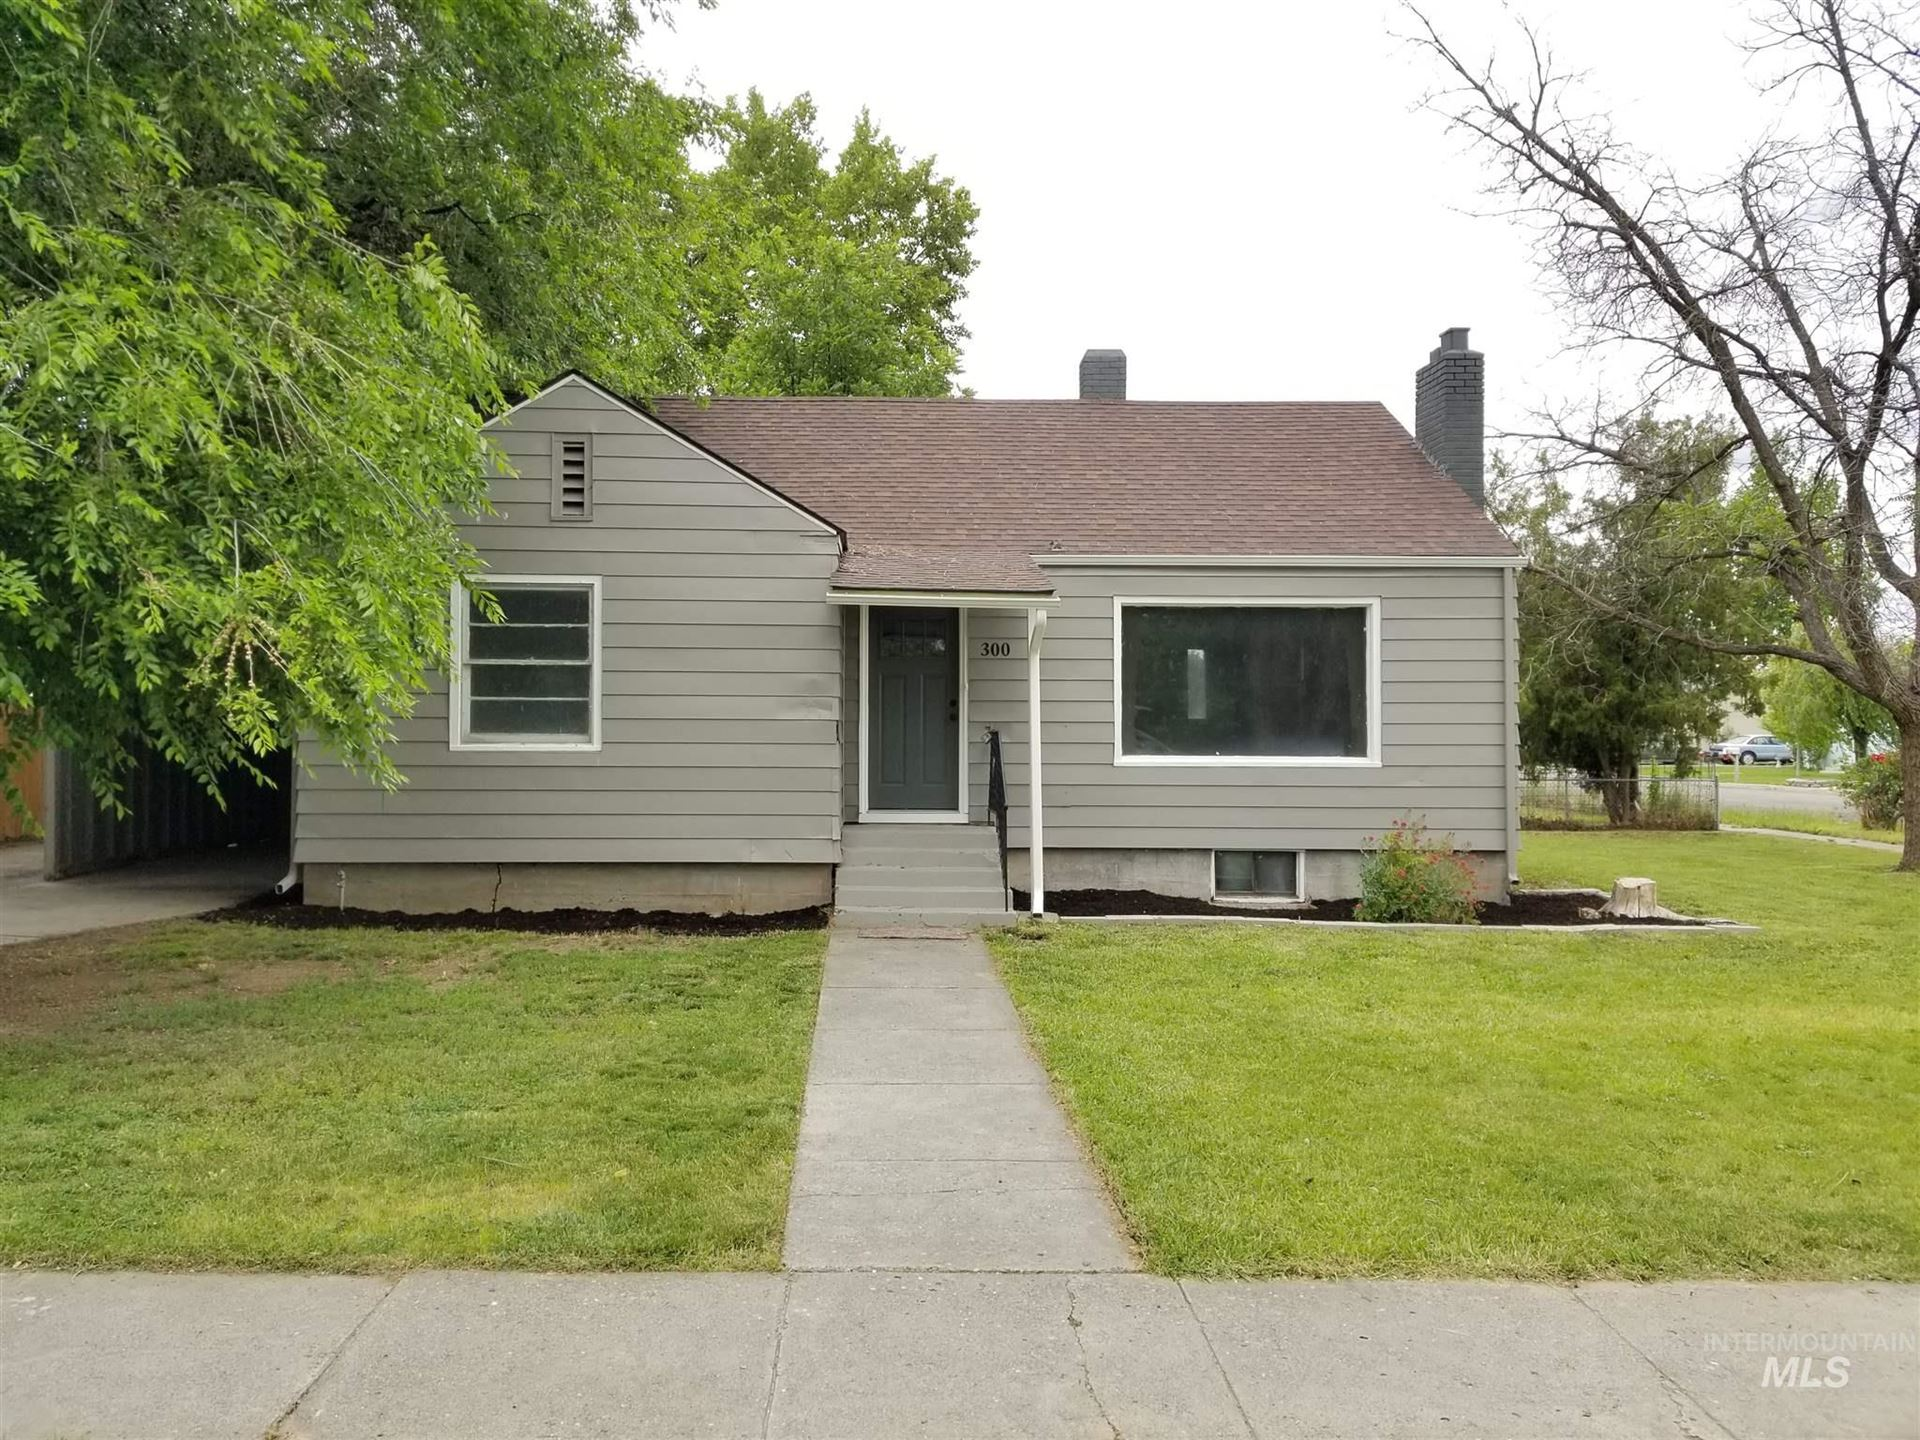 300 W Maple St, New Plymouth, ID 83655 - MLS#: 98771893